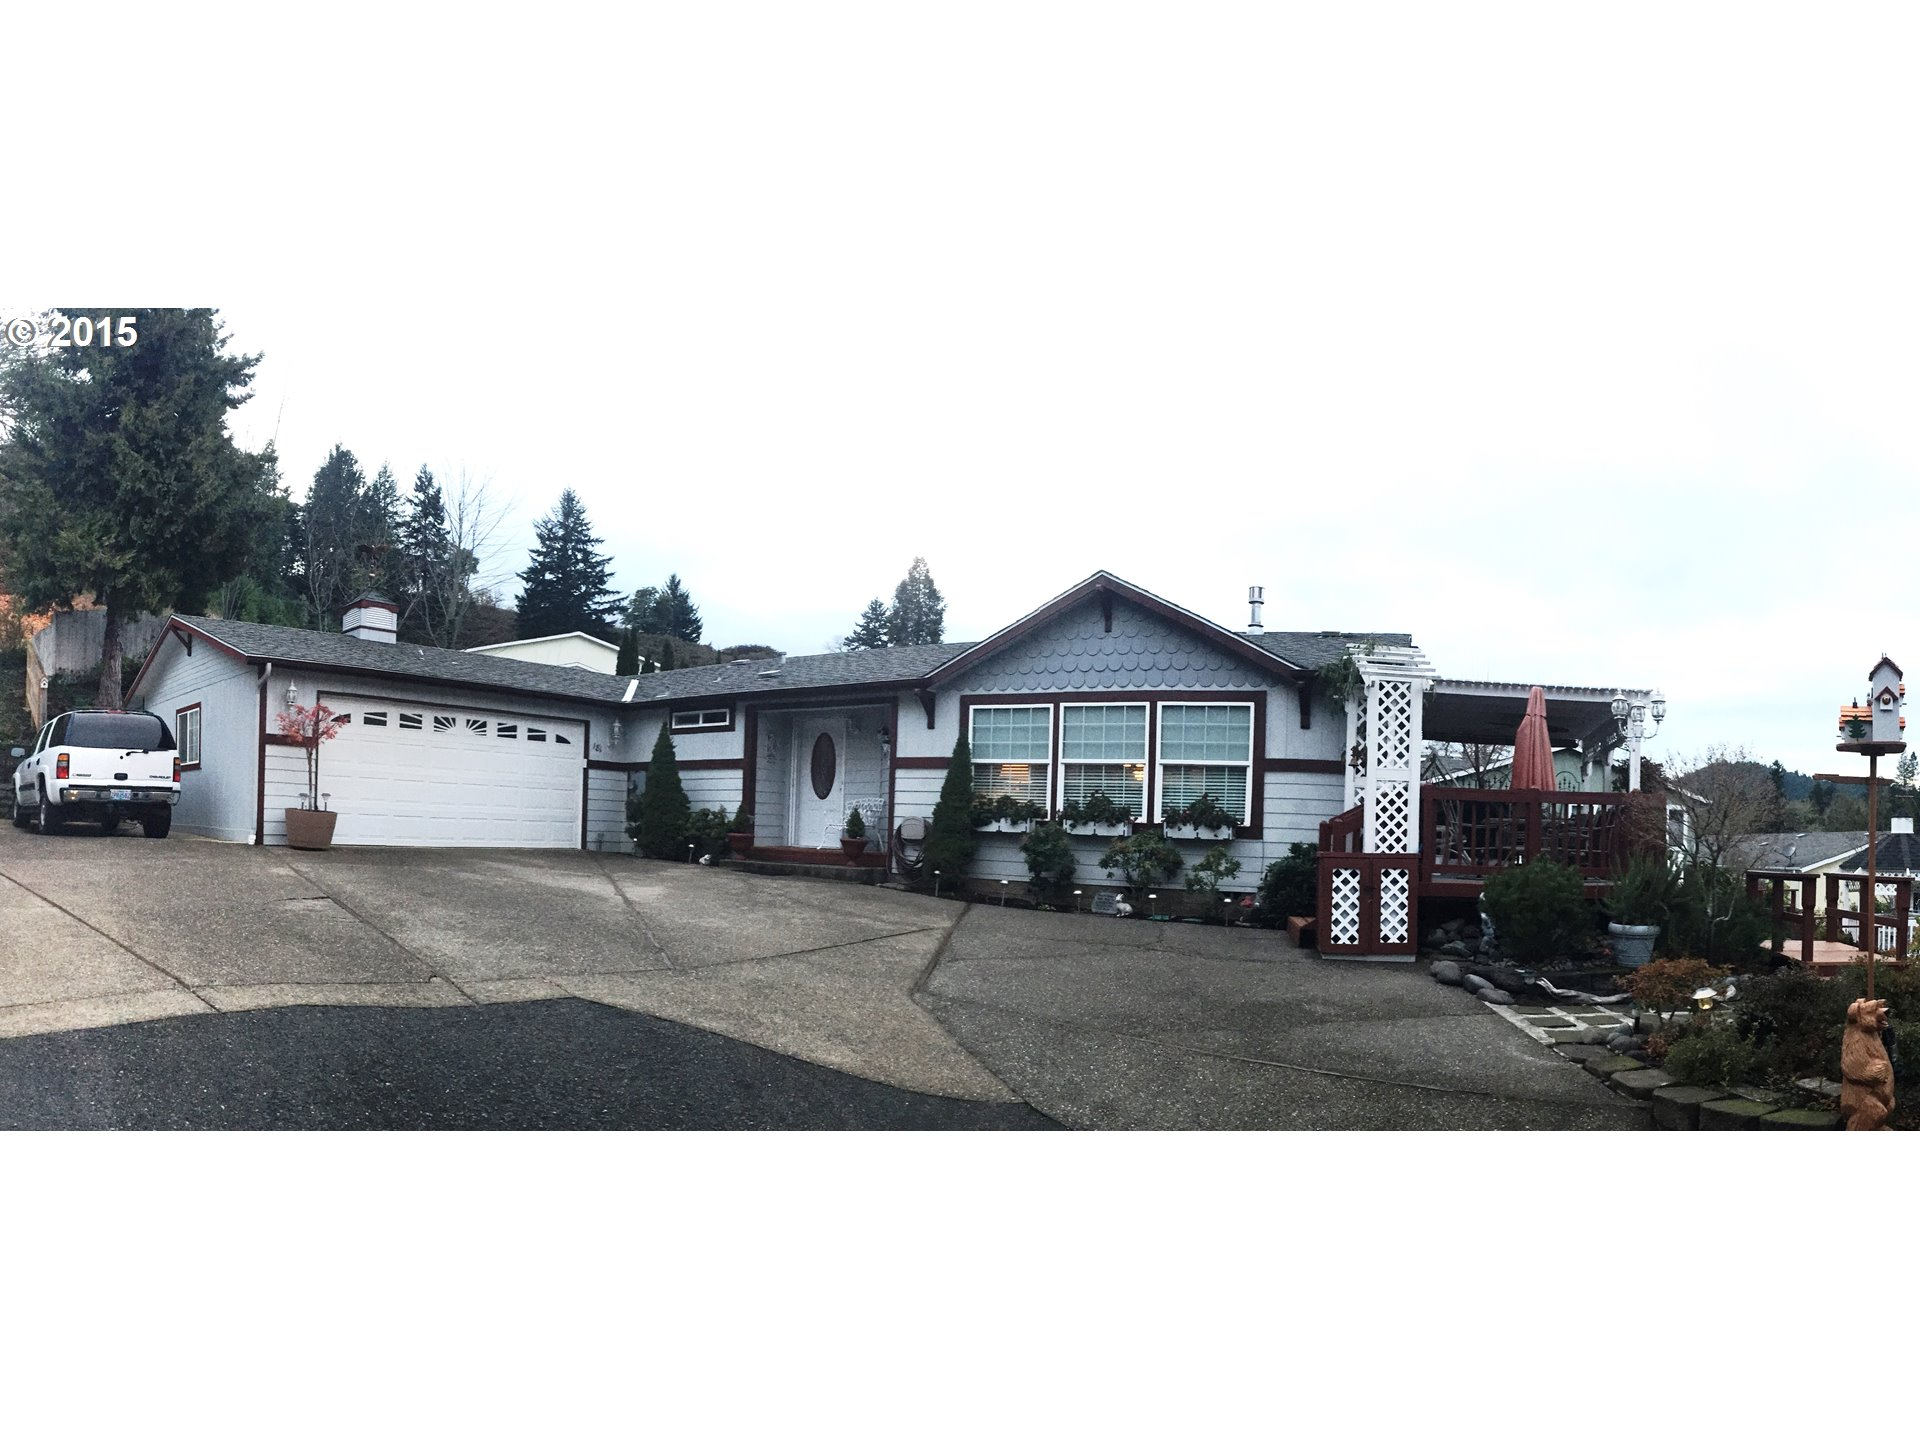 181 Brenda Pl, Canyonville, OR